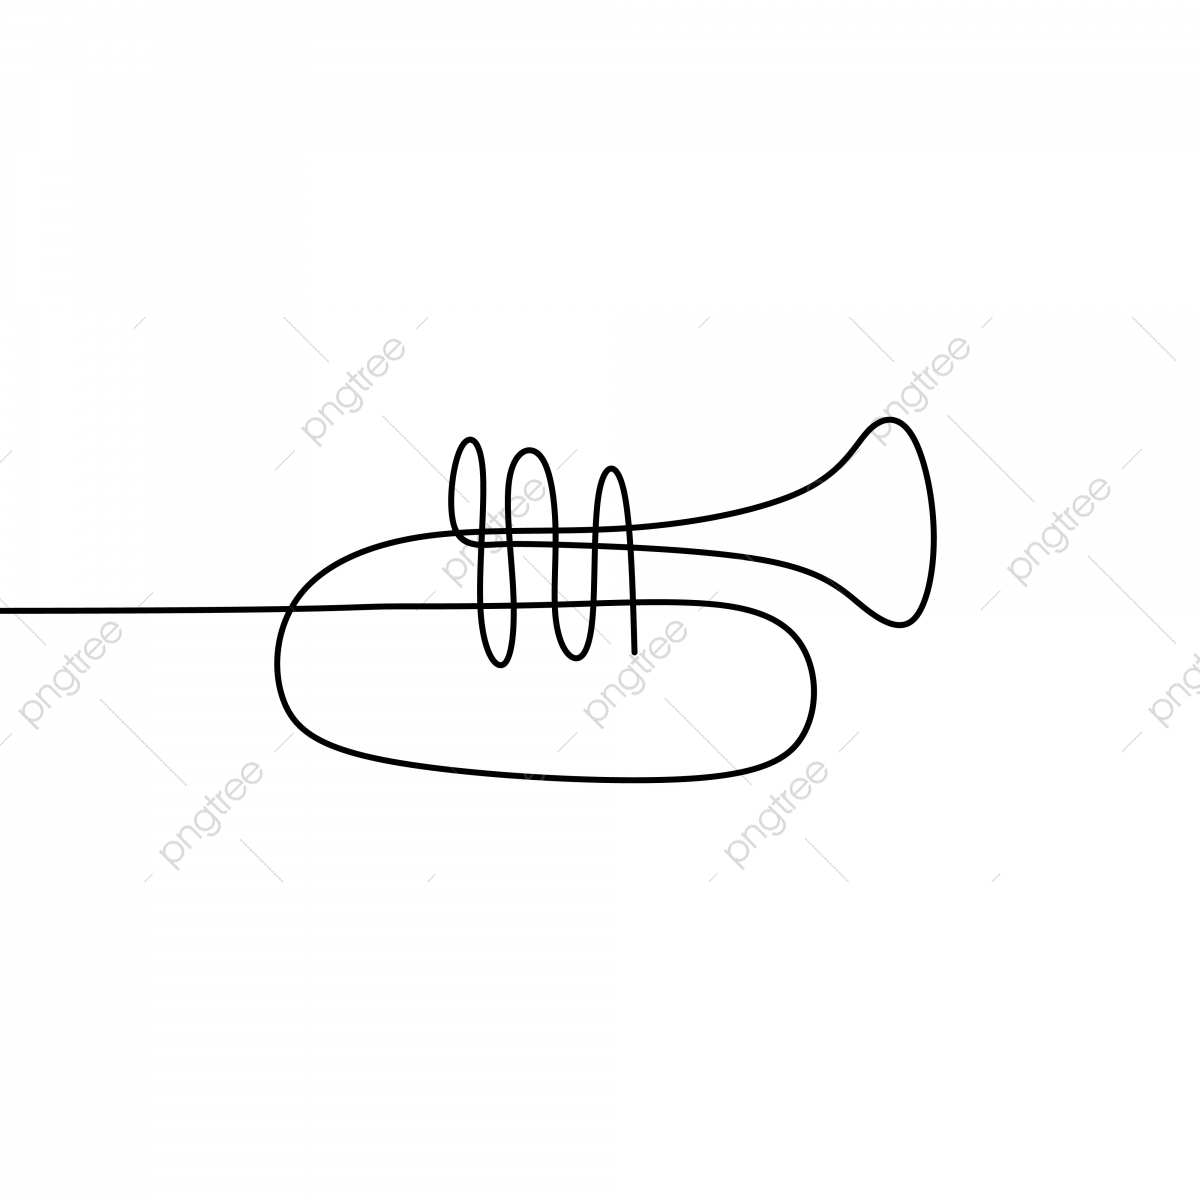 Picture Of A Continuous Line Of Trumpet Musical Instruments